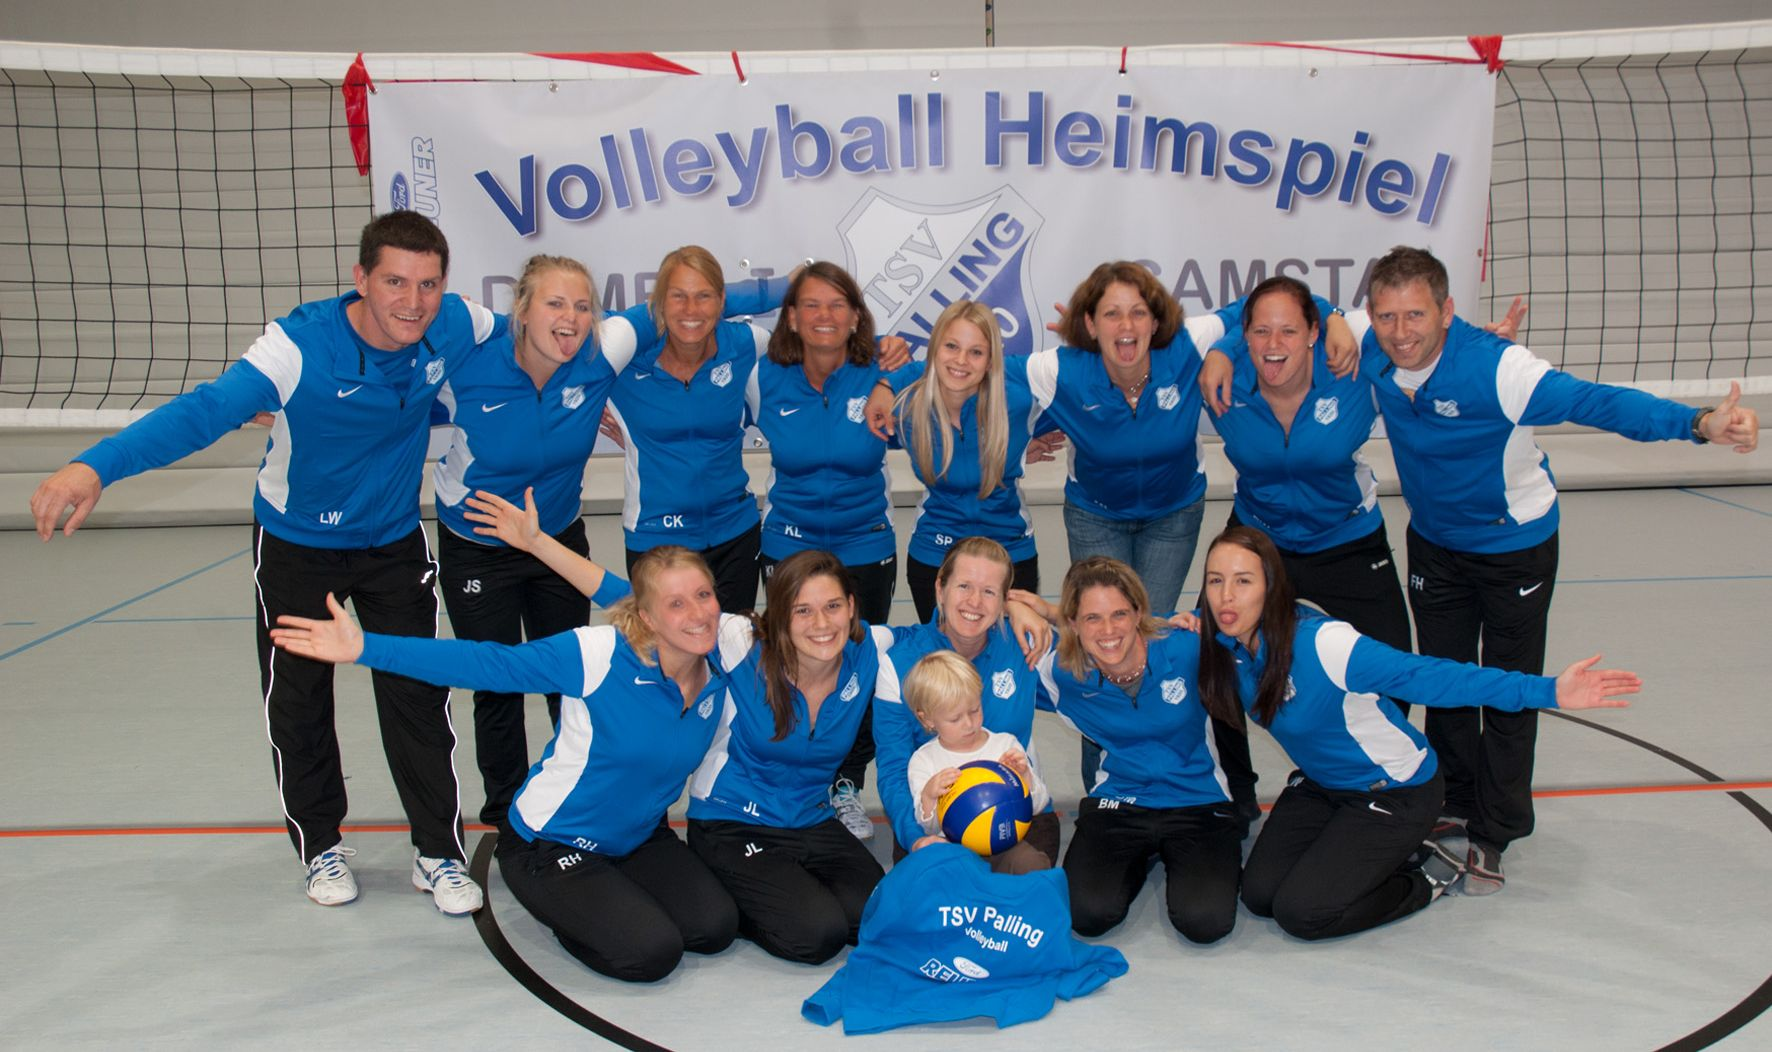 Volleydamen1 Gruppe 2